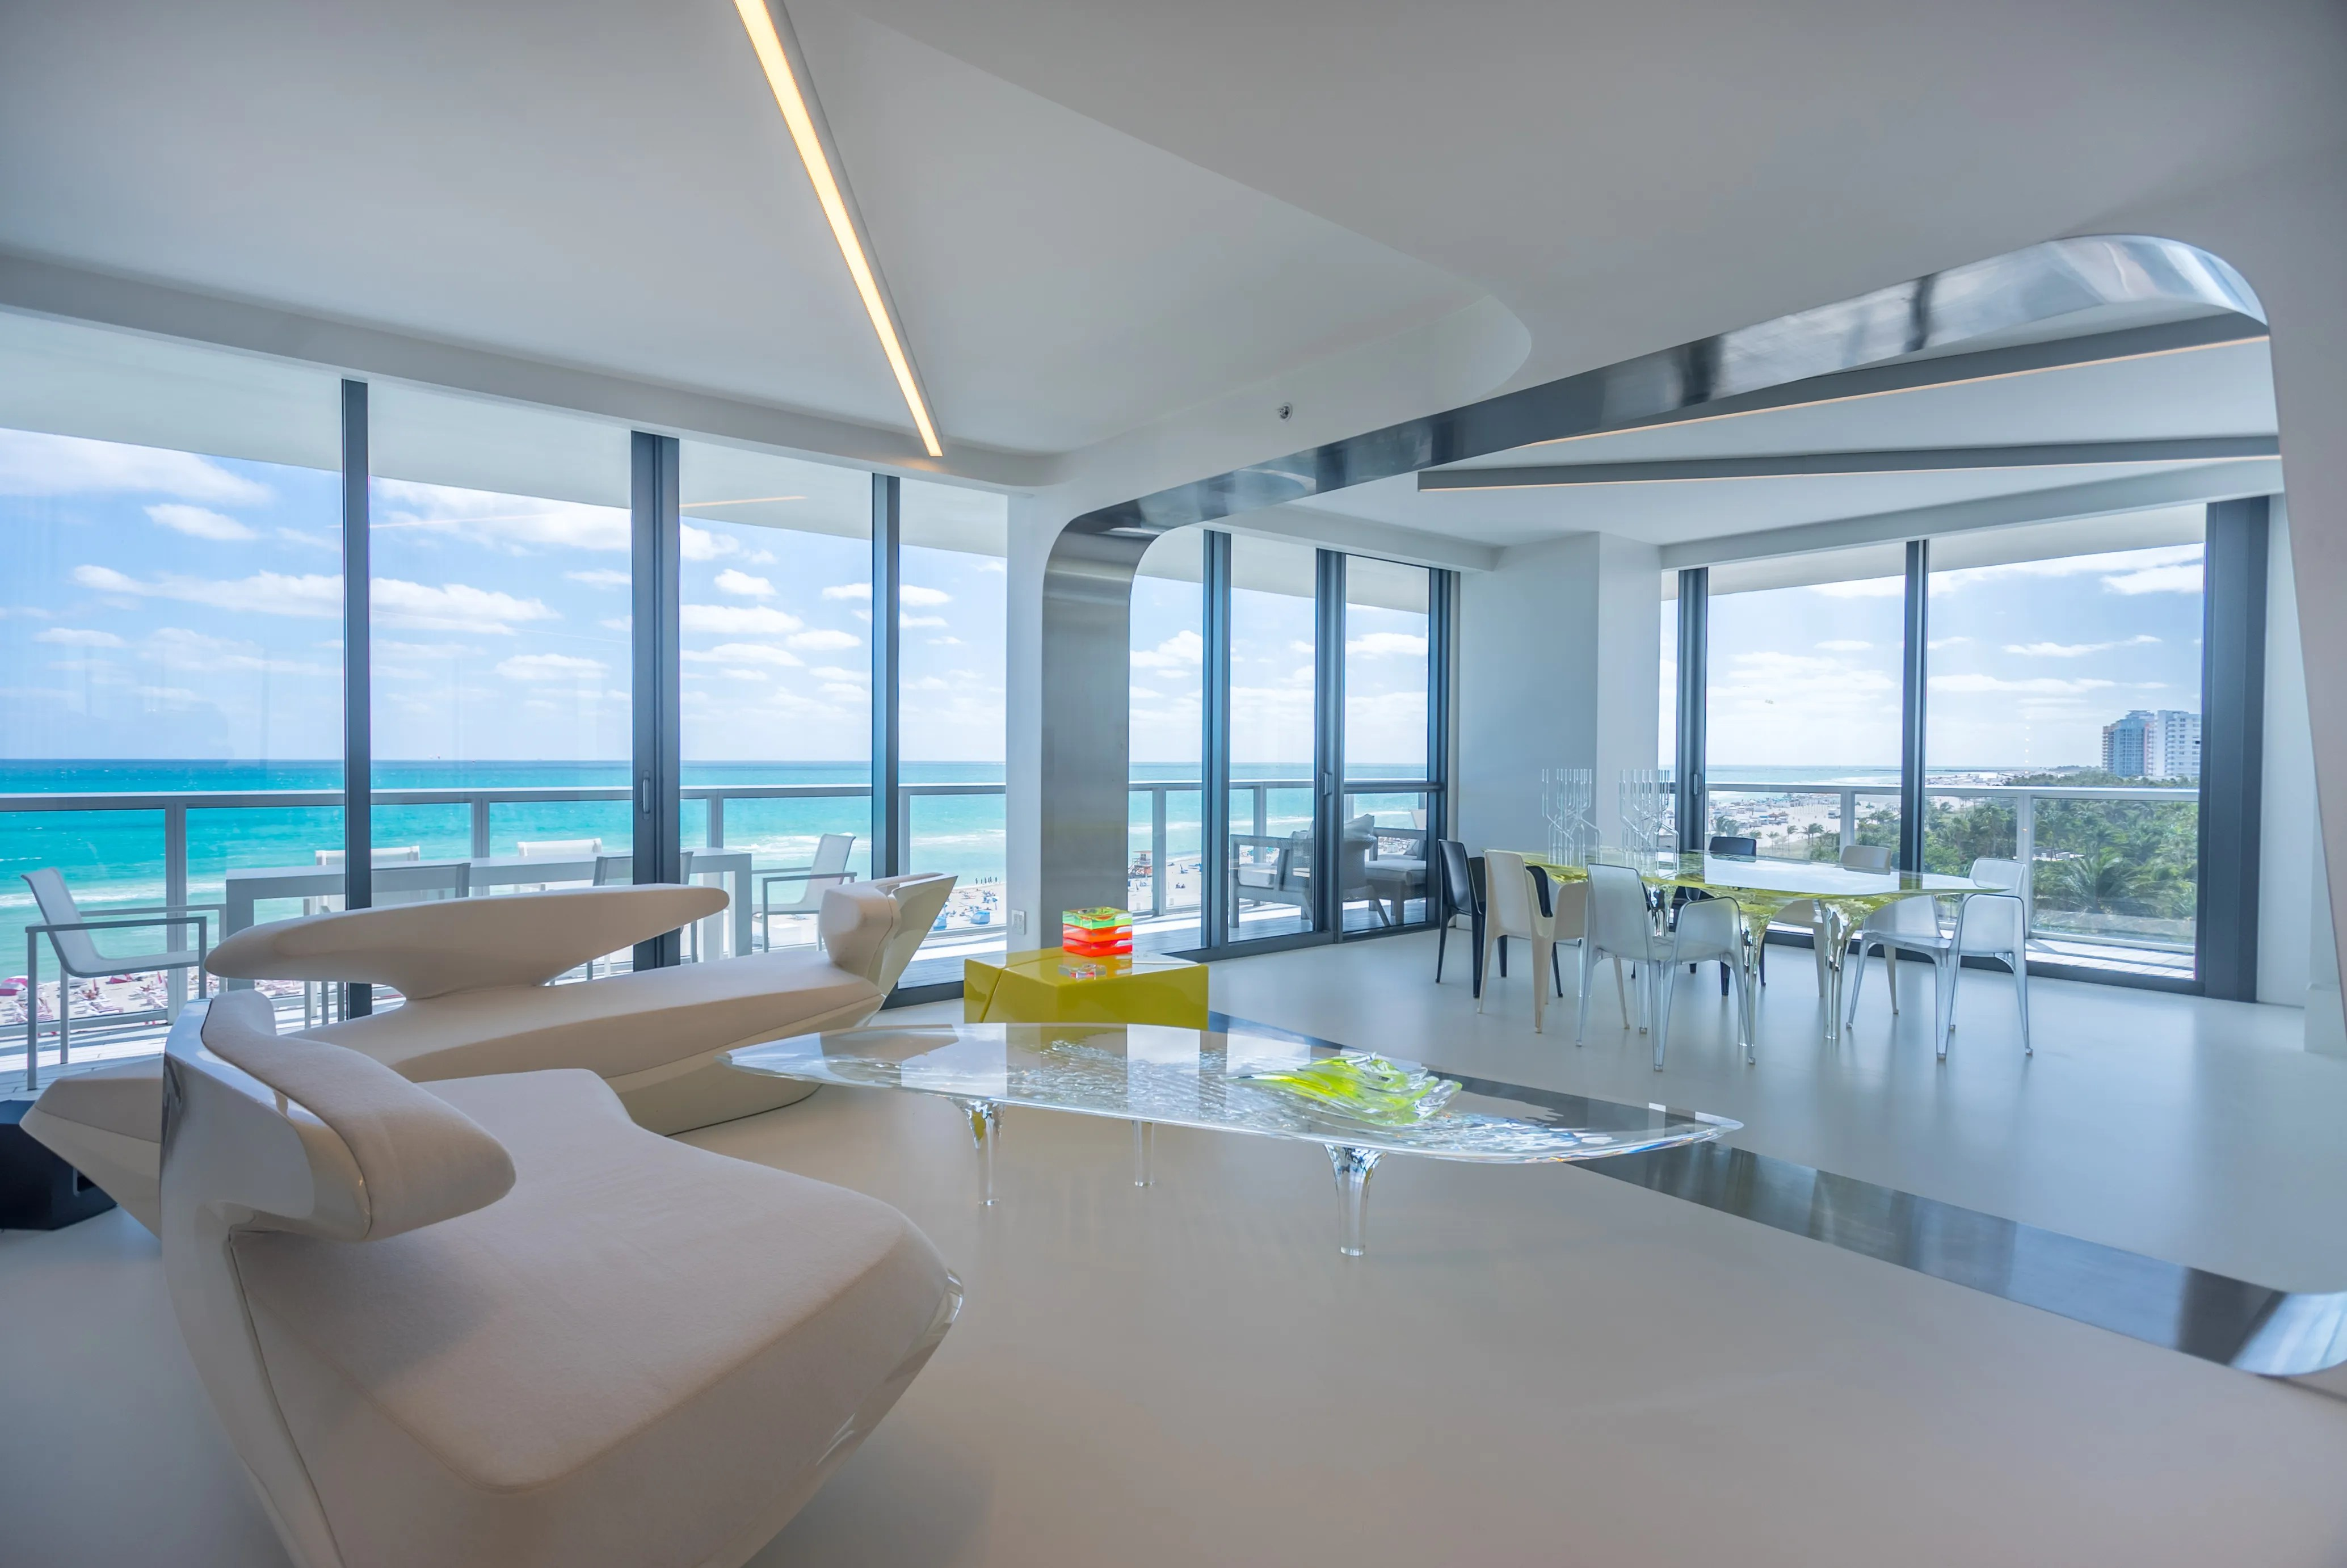 hotels in miami with kitchen sink light fixtures zaha hadid 39s private beach home is on the market for